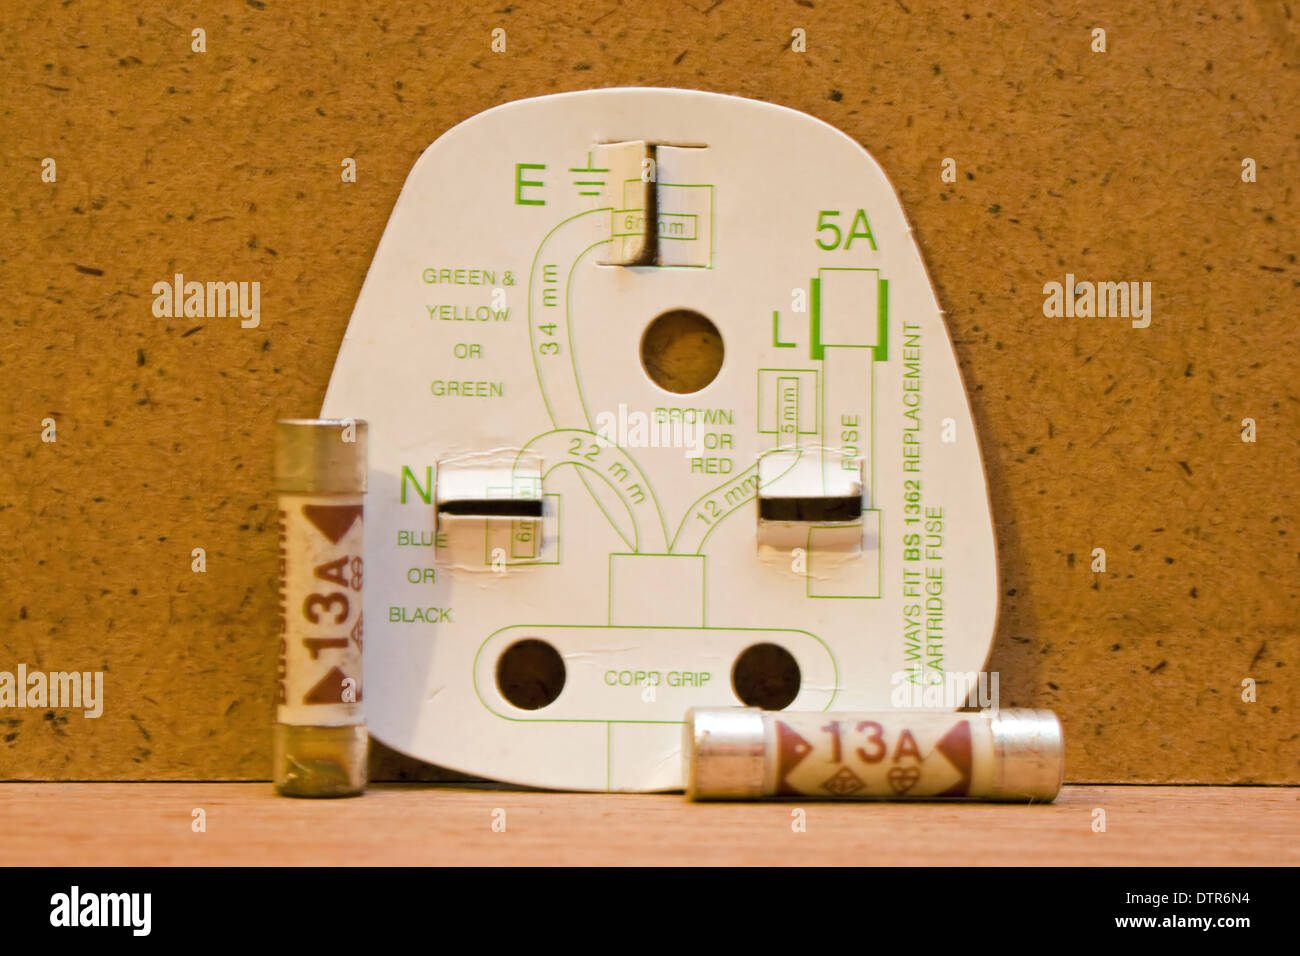 Wiring Virgin Telephone Socket Free Download Wiring Diagrams